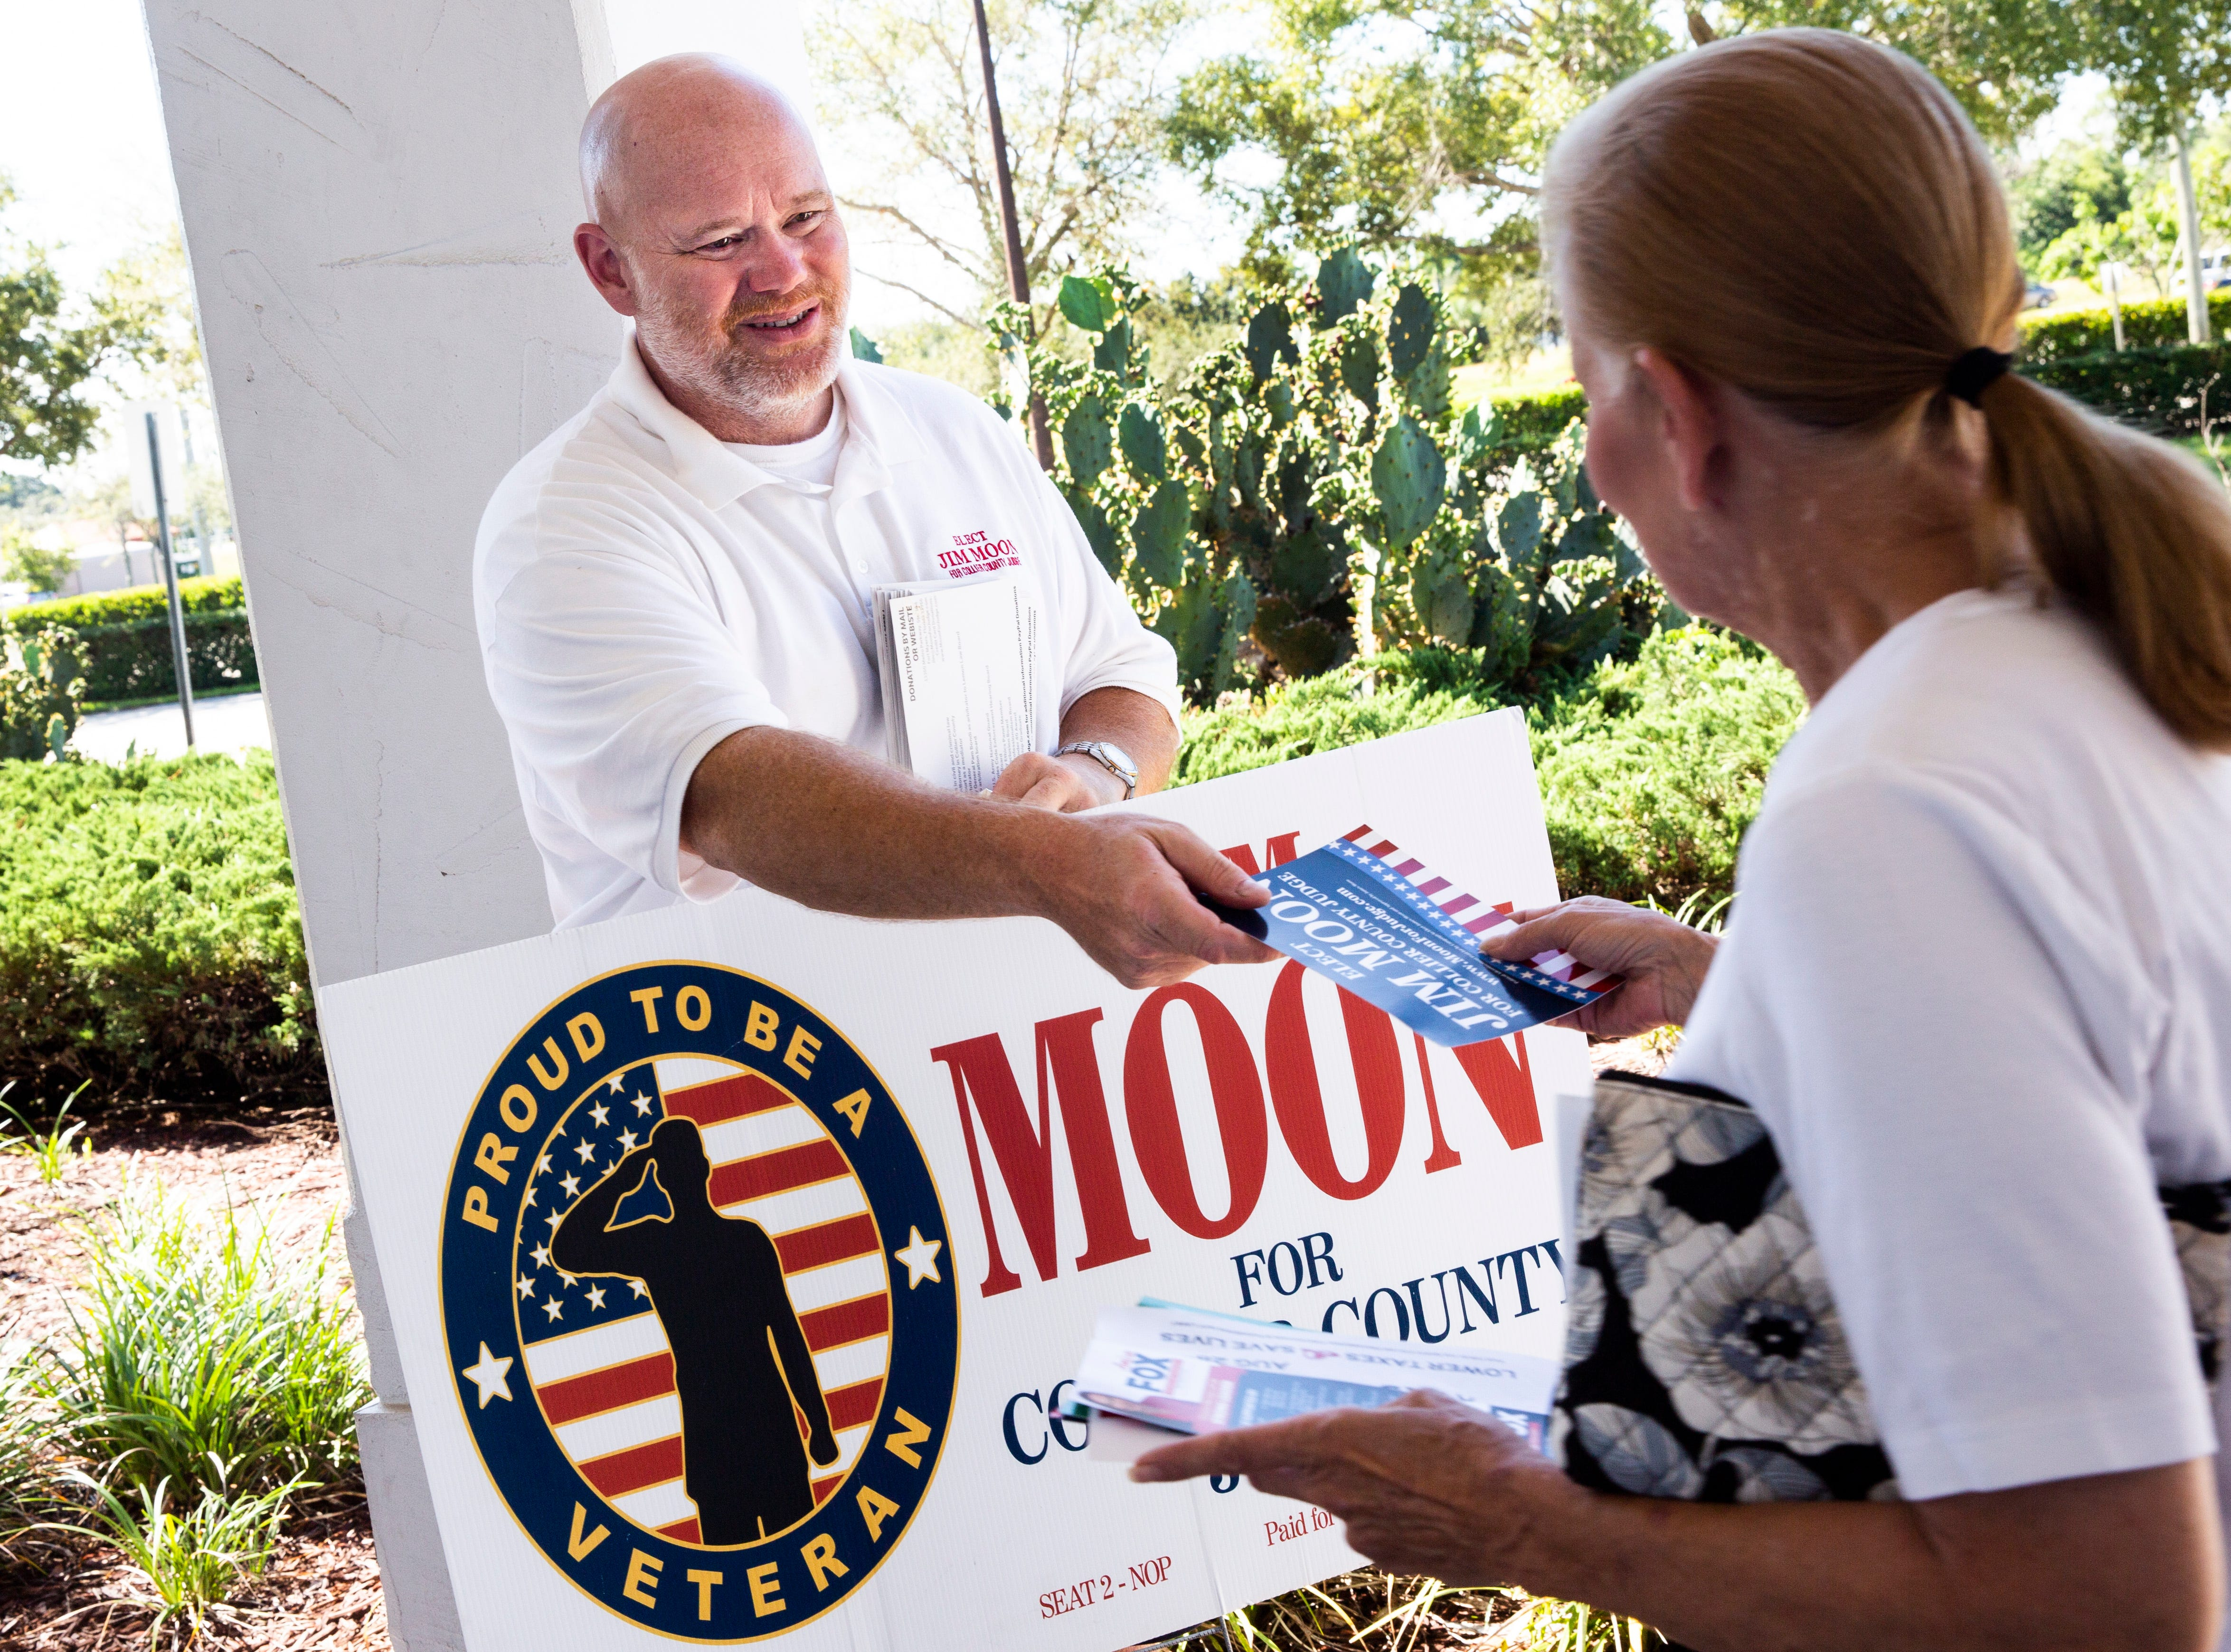 Jim Moon, who is running for Collier County Judge, hands out a leftlet to an incoming voter at the Collier County Public Library Headquarters in North Naples on Tuesday, August 28, 2018.